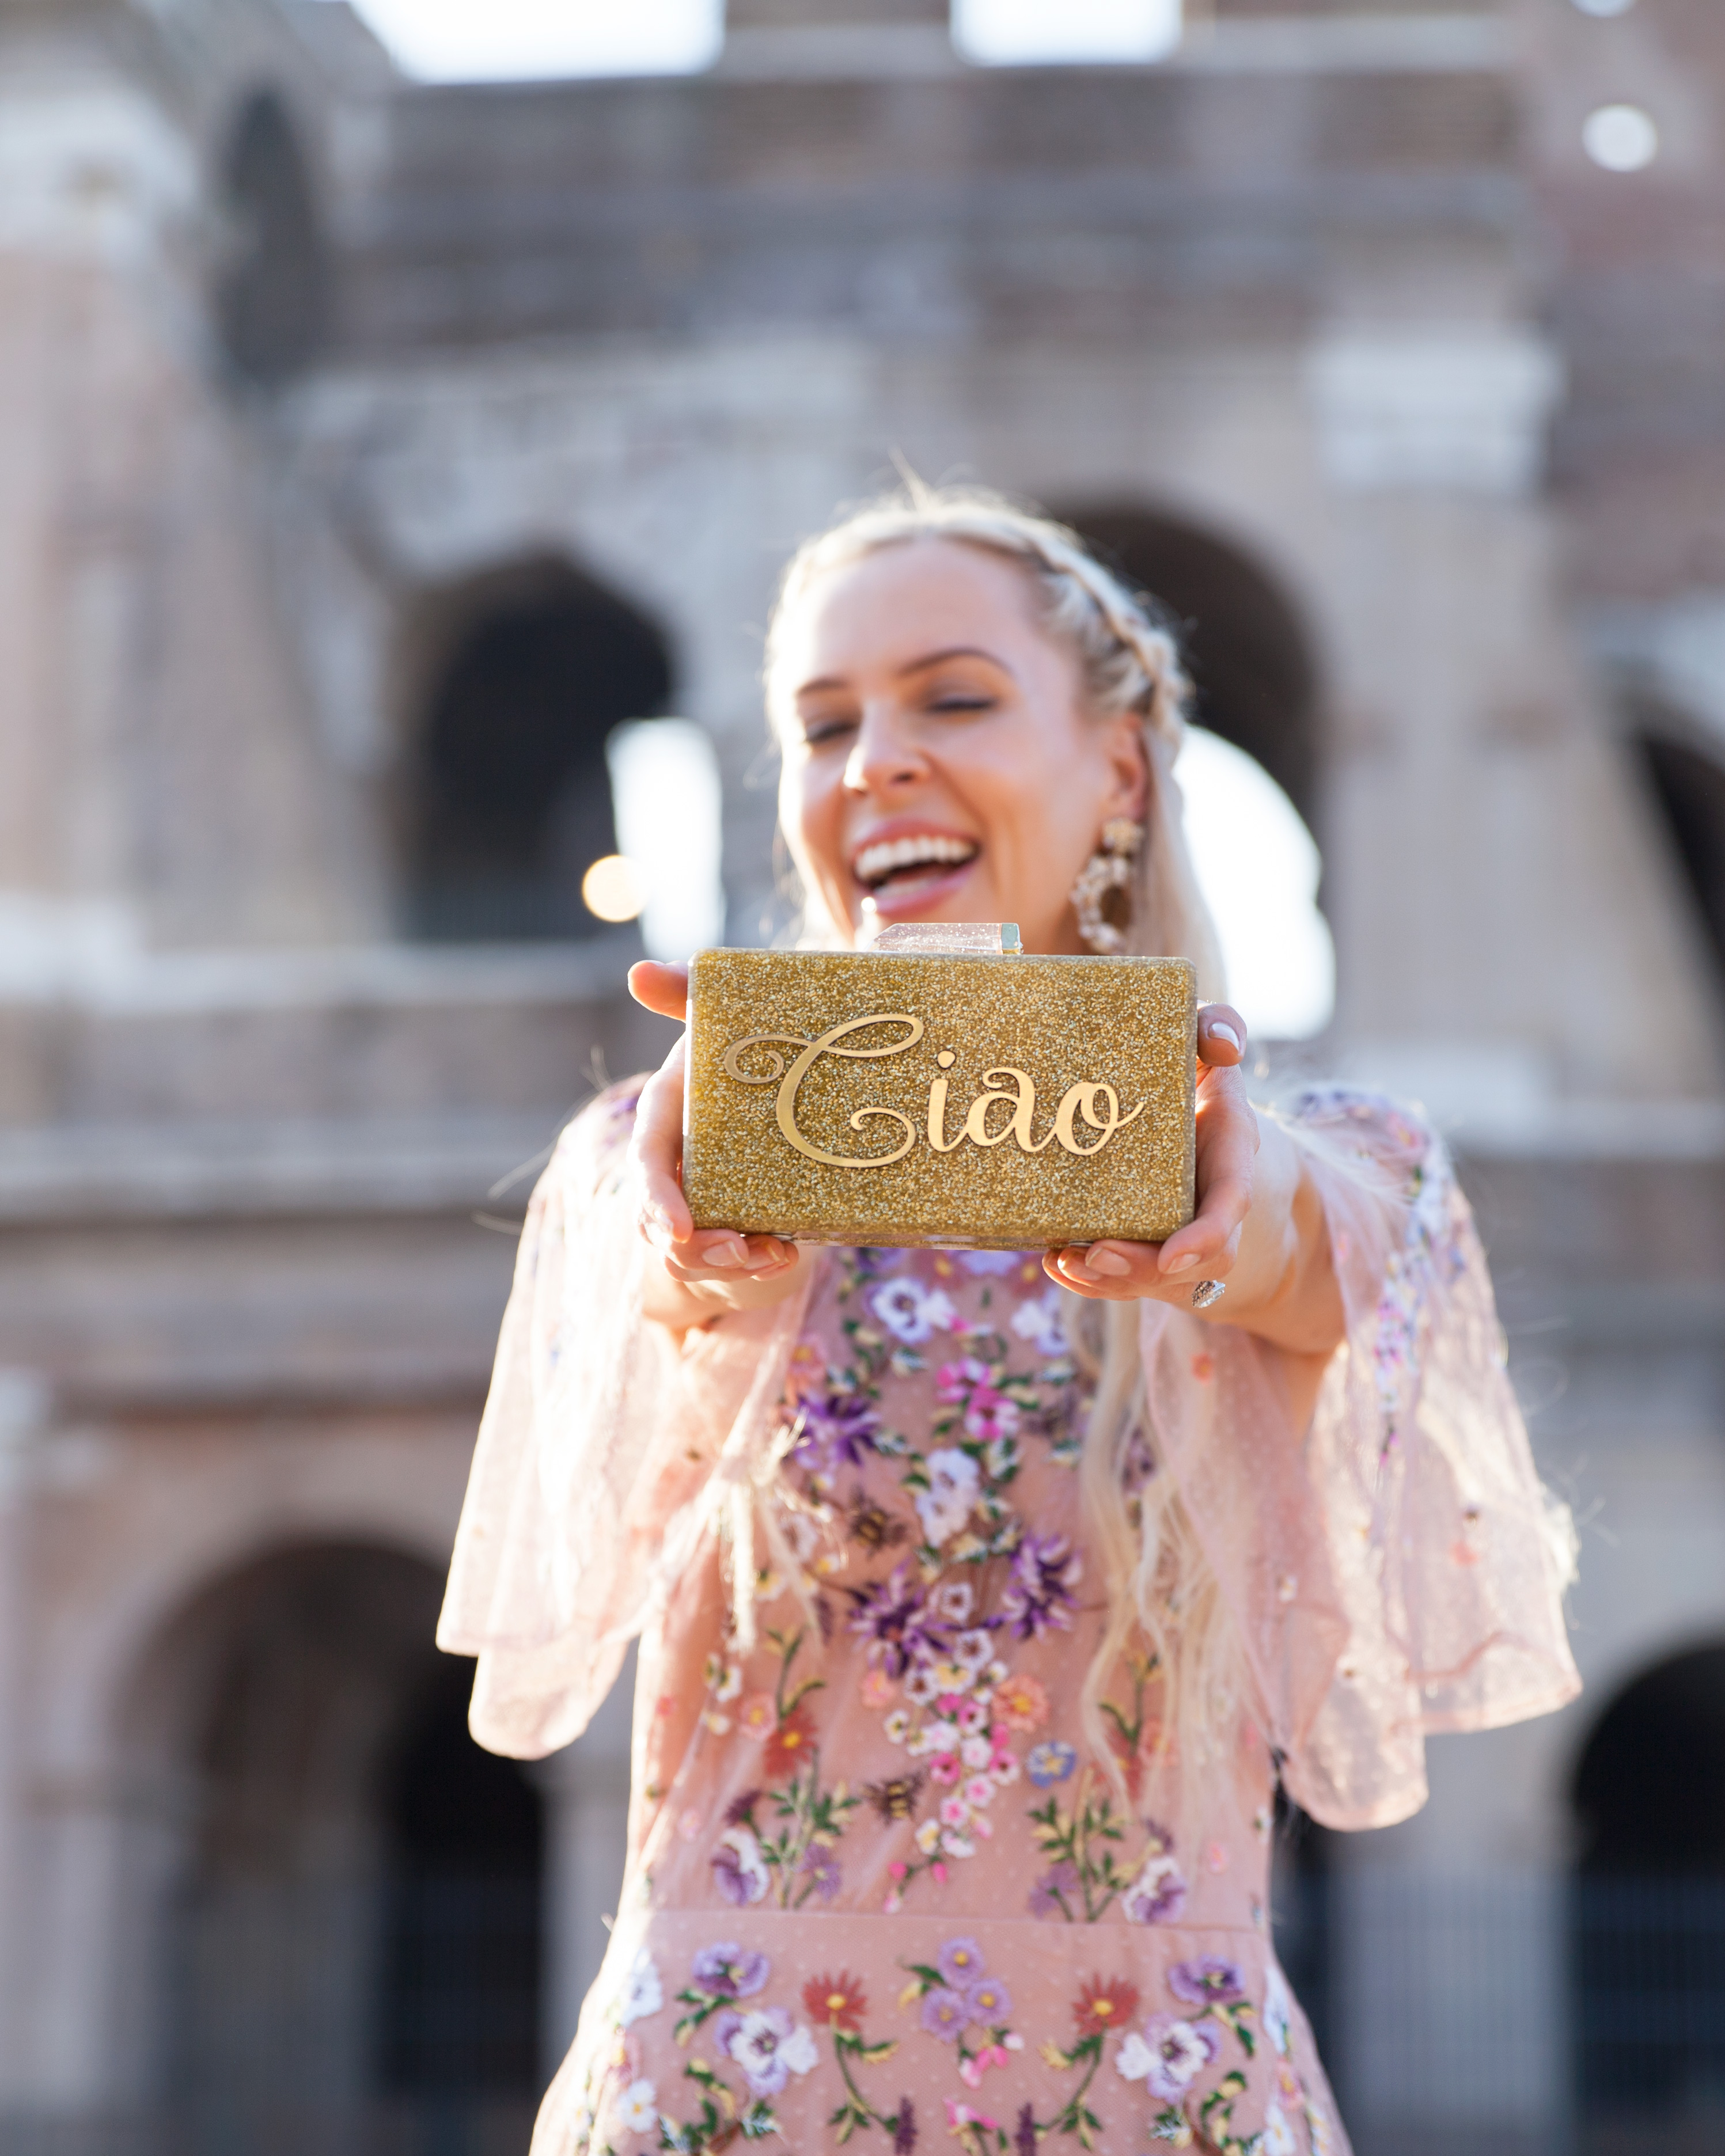 ASOS DESIGN Bridesmaid floral embroidered dobby mesh flutter sleeve maxi dress in barcelona in Rome  | ASOS floral embroidered maxi dress featured by top San Francisco fashion blog, Lombard and Fifth: image of a blonde woman wearing a floral maxi dress at the Colosseum in Rome